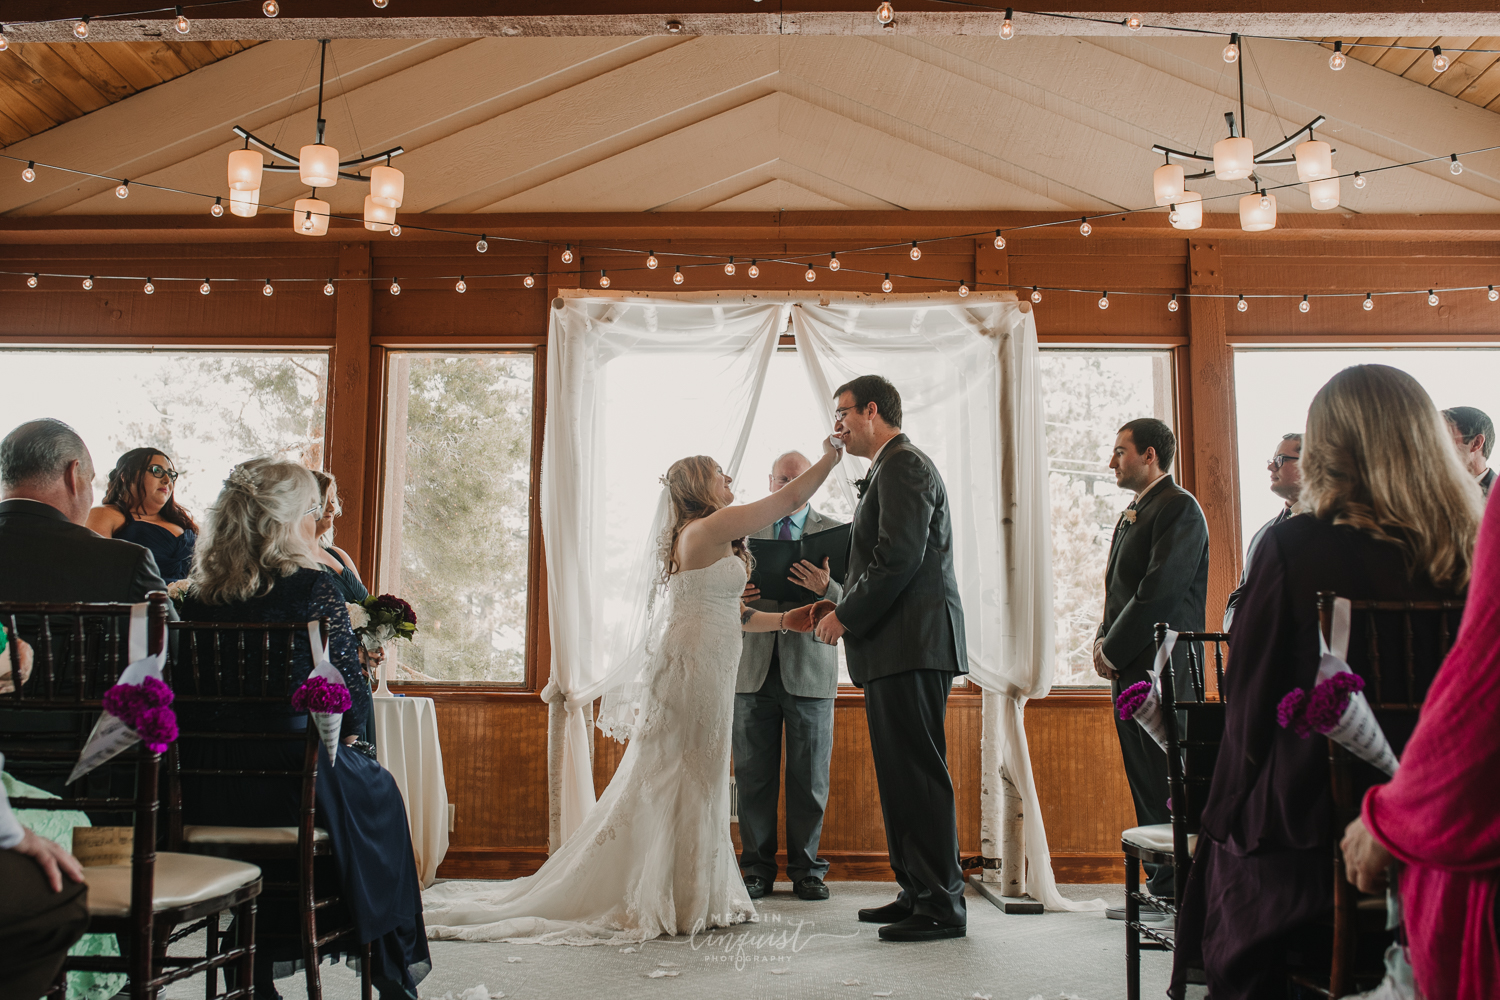 music-themed-winter-wedding-tannenbaum-event-center-reno-lake-tahoe-wedding-photographer-38.jpg